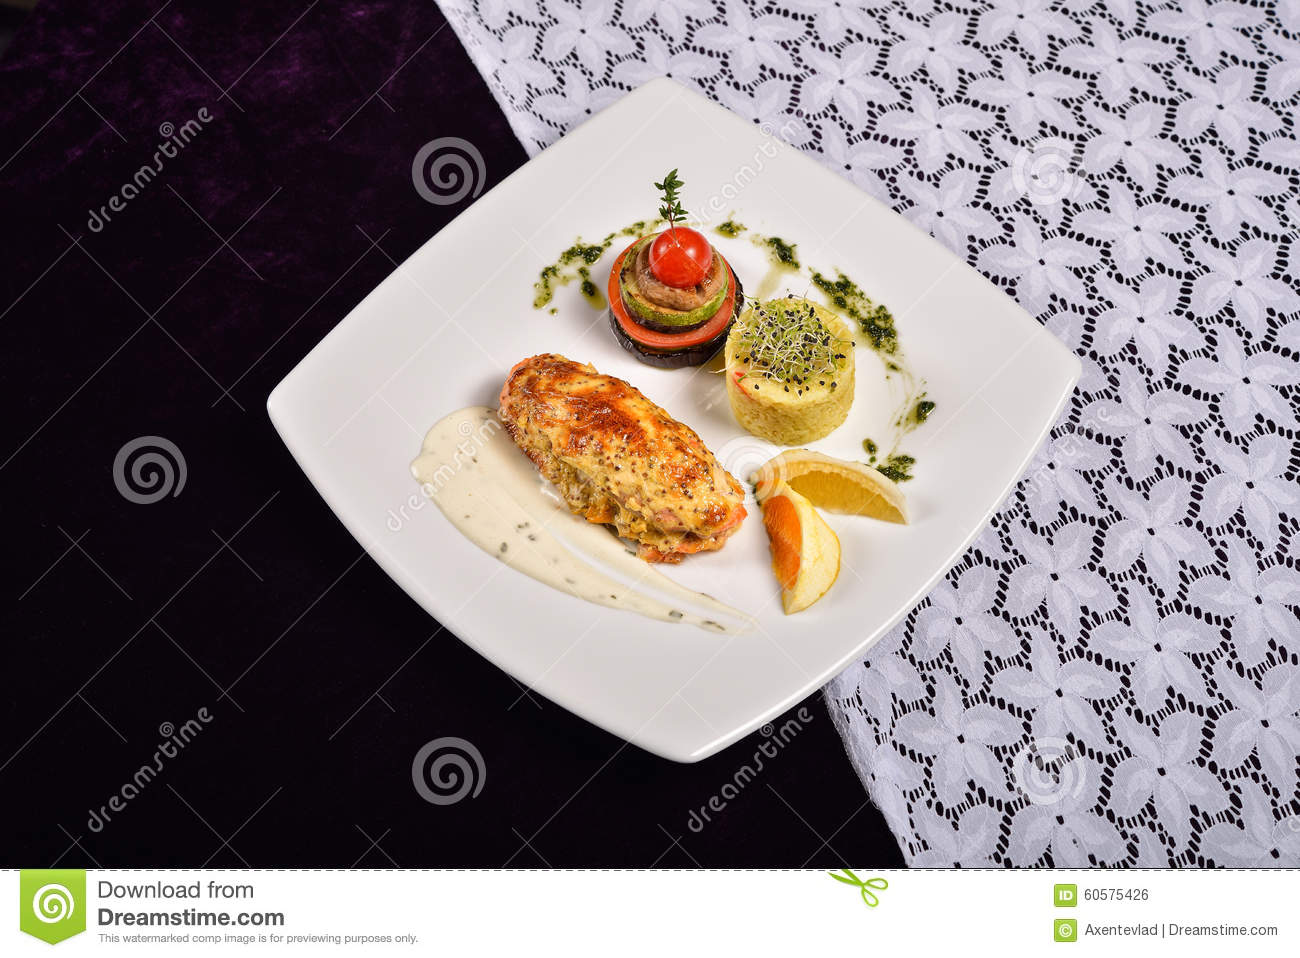 Grilled Salmon And Vegetables Menu From A Restaurant Stock Photo